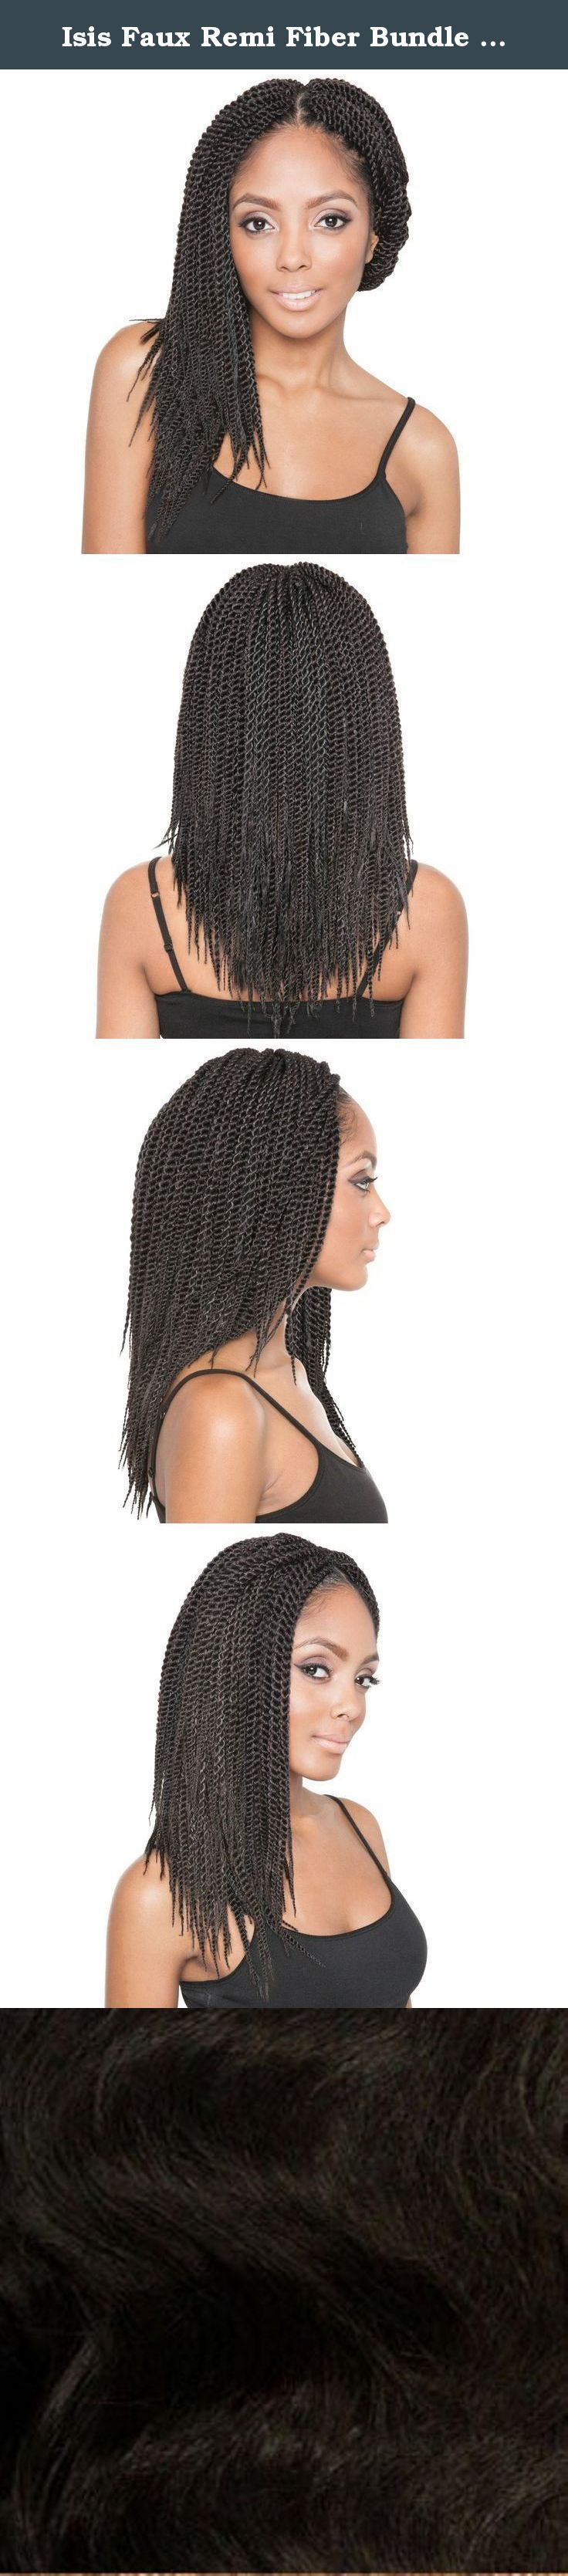 Isis Faux Remi Fiber Bundle Braid / Bulk SENEGALESE TWIST 14 Inch - 2. Originating from West Africa we bring you exclusive hand-made styles of Senegalese Bundles for crocheting! Create wonders withour Faux Remi Senegalese Bundle, hair that is not only protective but soft to the touch causing no irritation and easy to install.Great for socializing, youand yourfriends will easily get hooked on Faux Remi Senegalese Bundle crochet styles straight fromthe Motherland!.